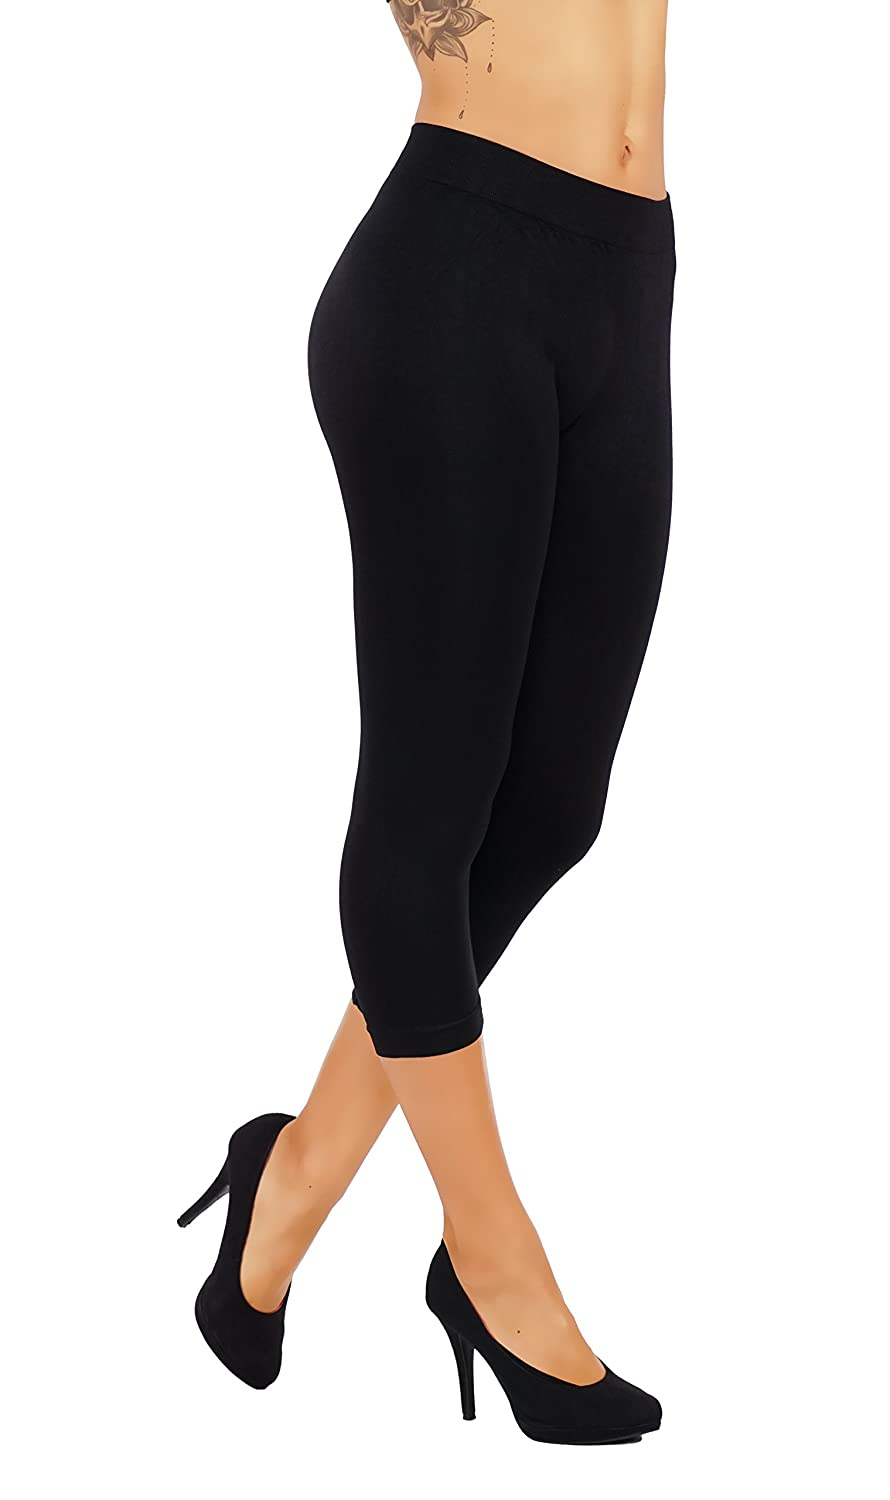 5cb727d64bef15 CASUAL EVERY DAYLEGGINGS: 5starsline pul-up leggings are great for any  occasion from walking at the park to date night available in capri and full  ...